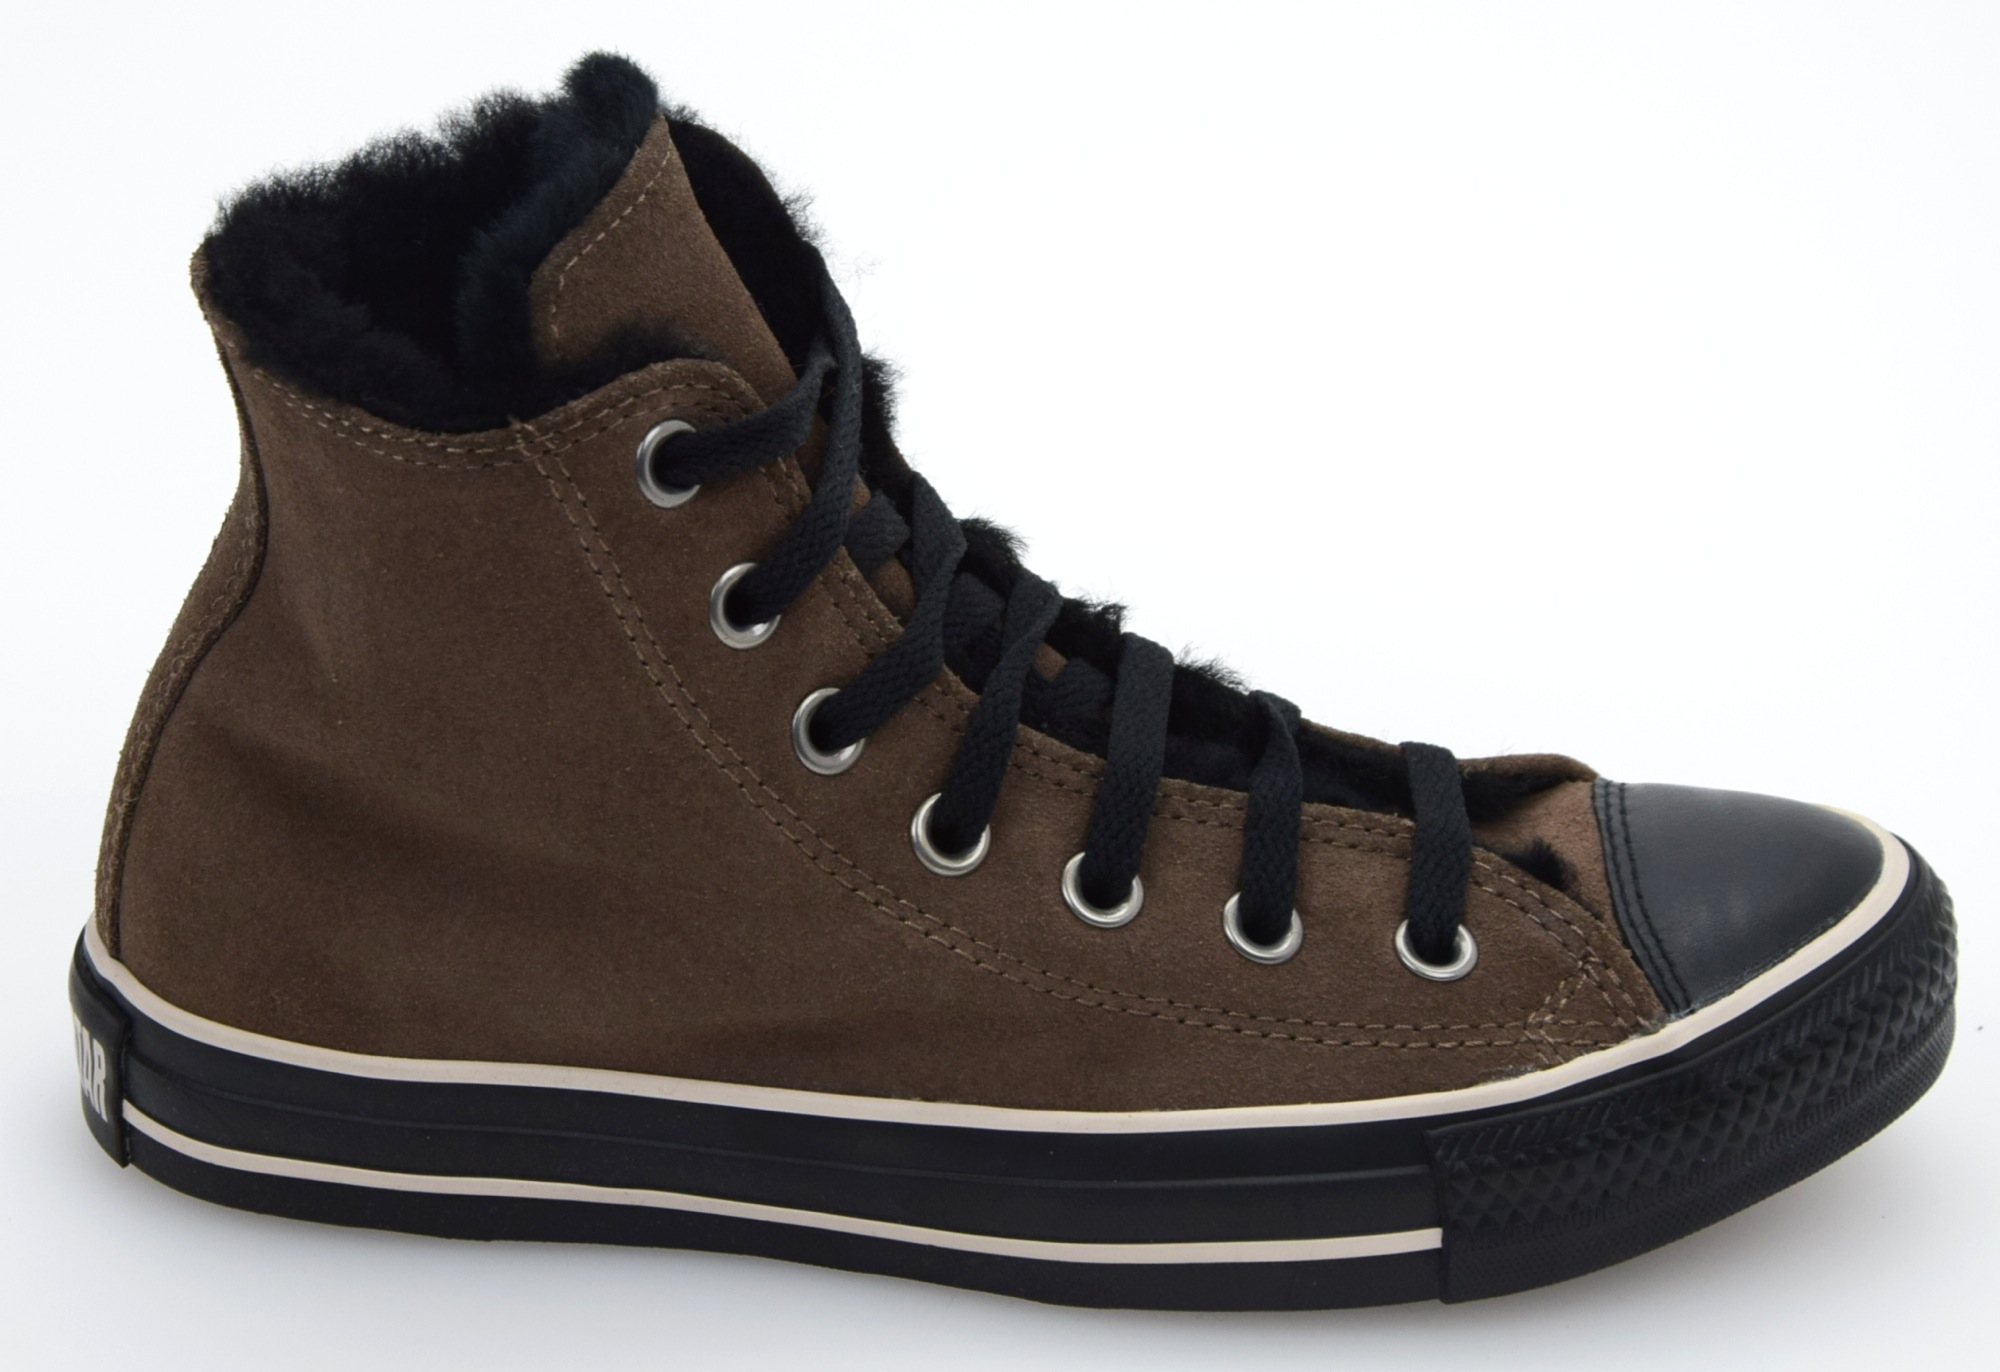 converse all star woman sneaker shoes dark brown and black suede code 128120c ebay. Black Bedroom Furniture Sets. Home Design Ideas